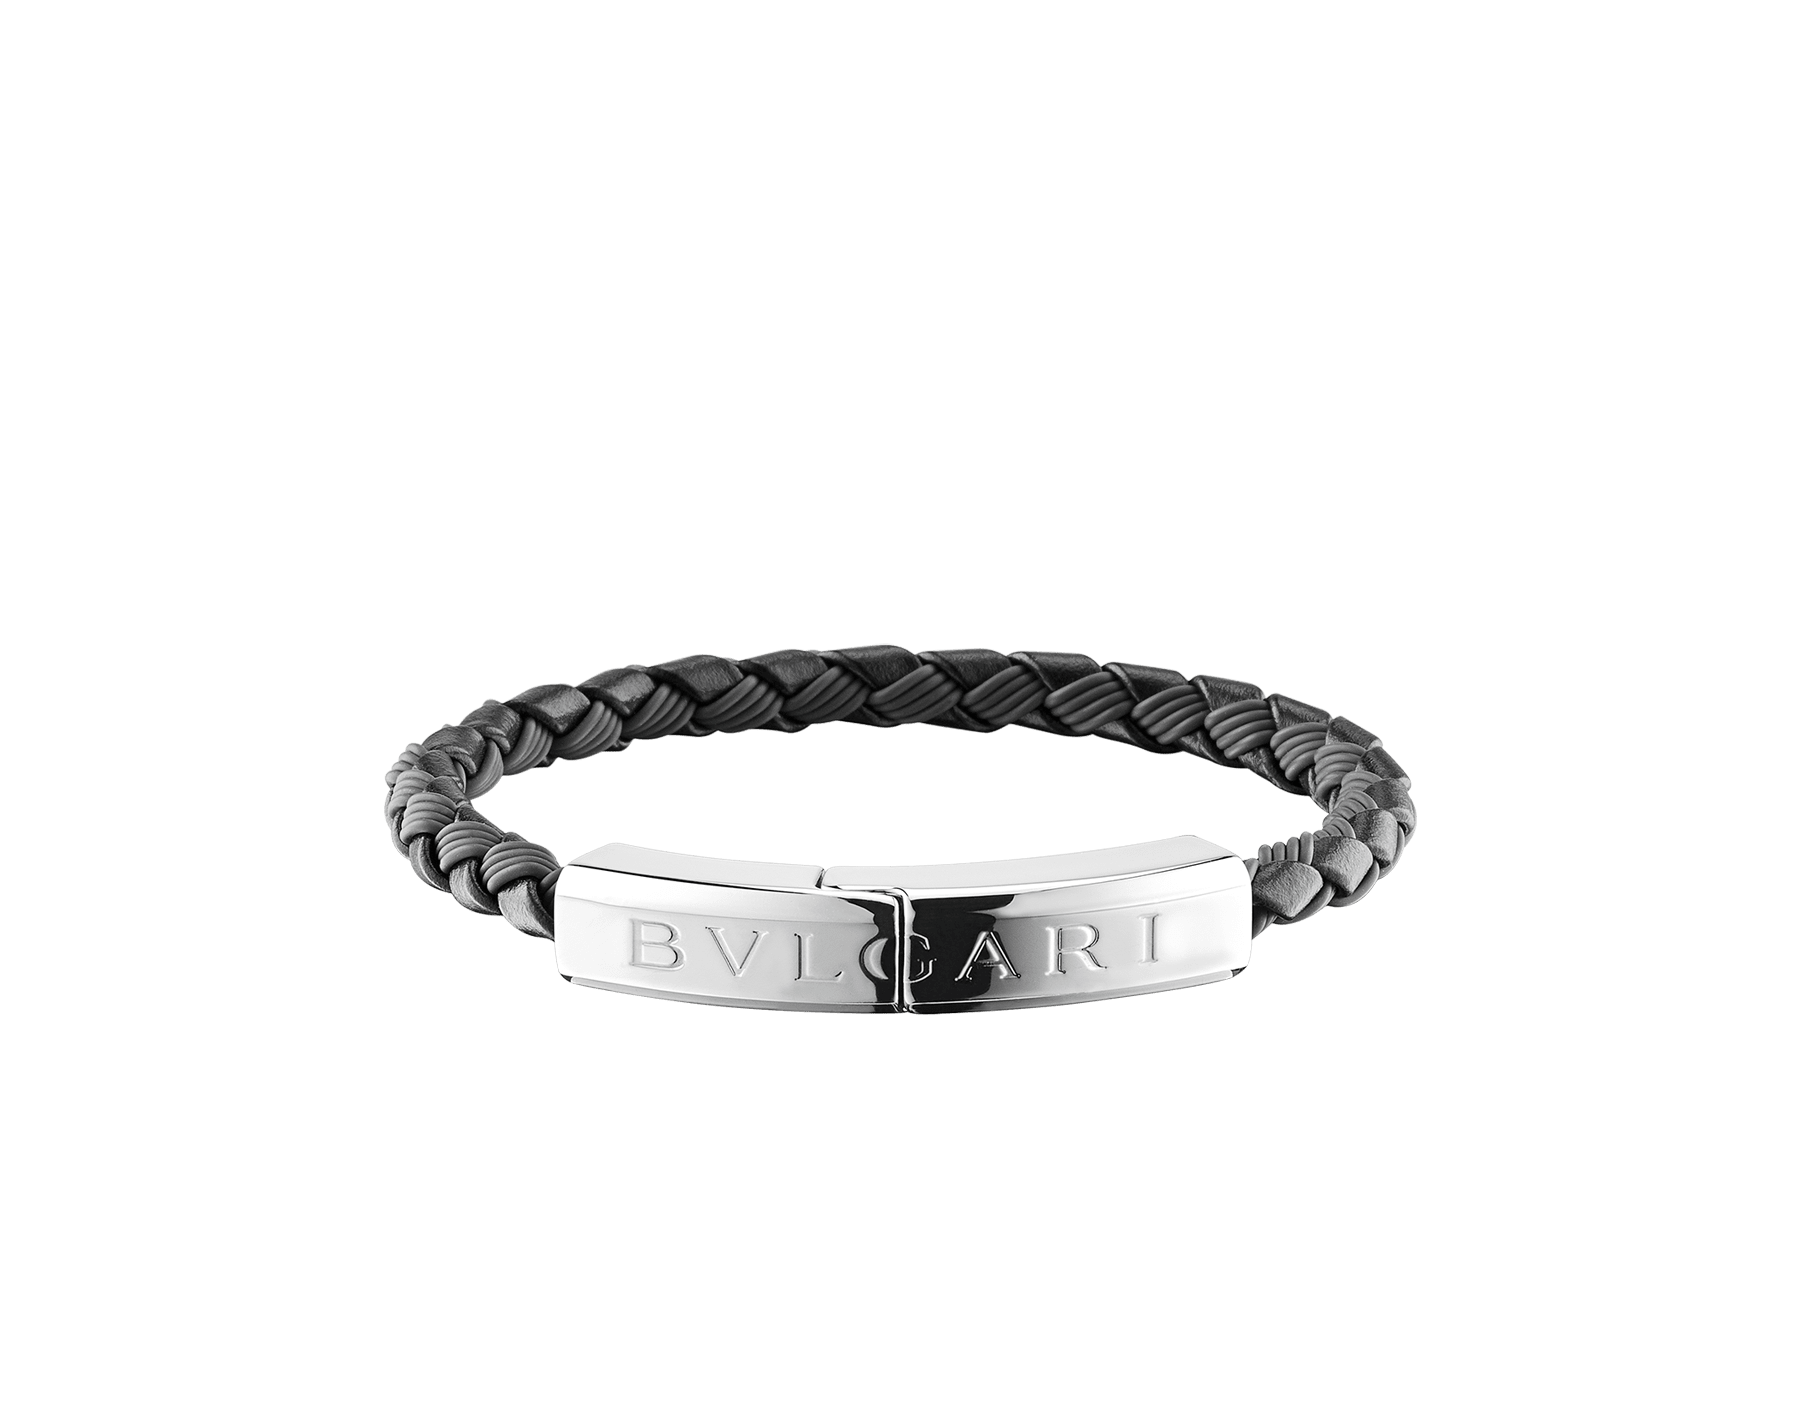 """BVLGARI BVLGARI"" bracelet in black calf leather and black rubber with a silver plated closure with Bvlgari logo. LogoPlate-CLR-B image 1"